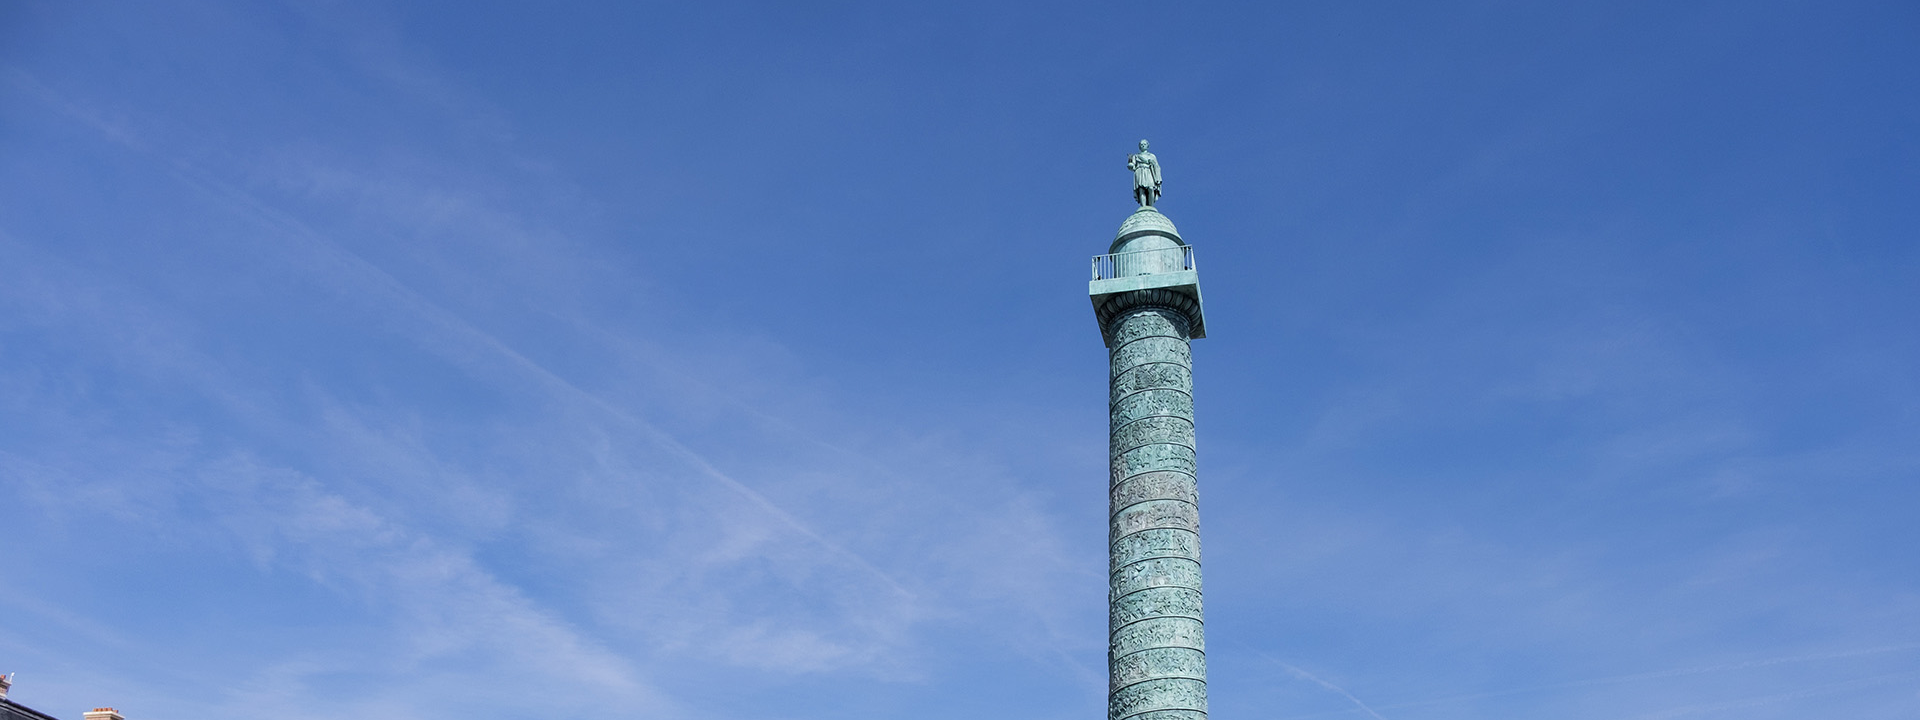 Explore Paris Place Vendome